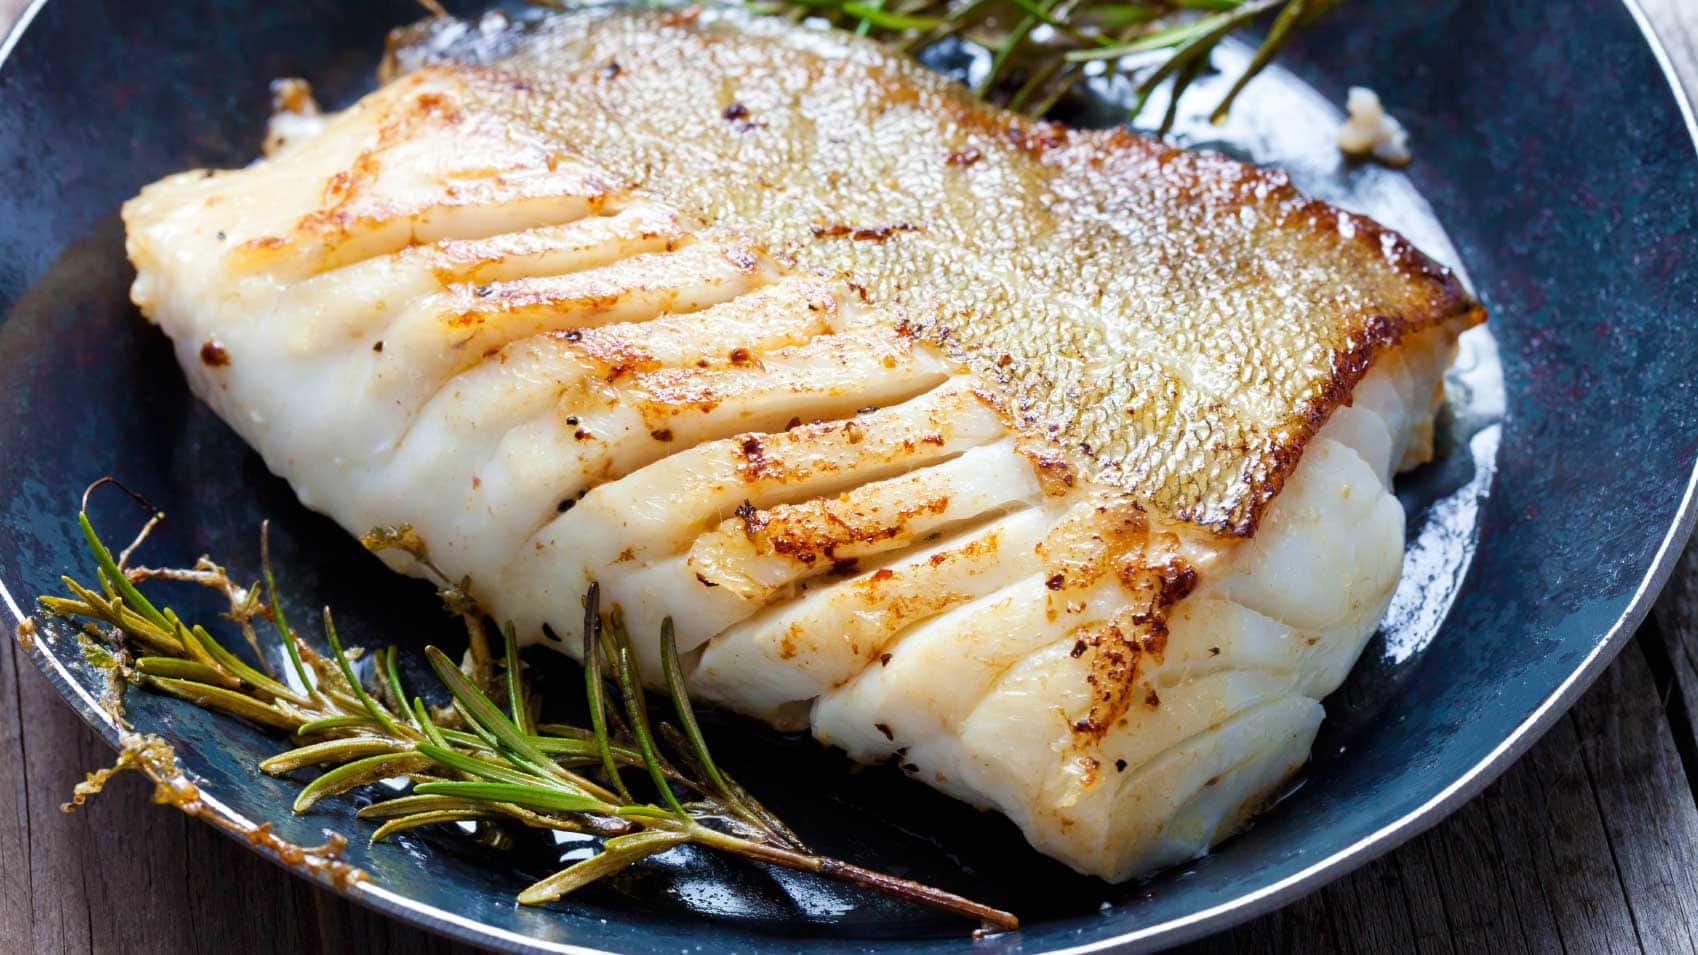 How to pick and cook the perfect fish steven and chris for Popular fish to eat